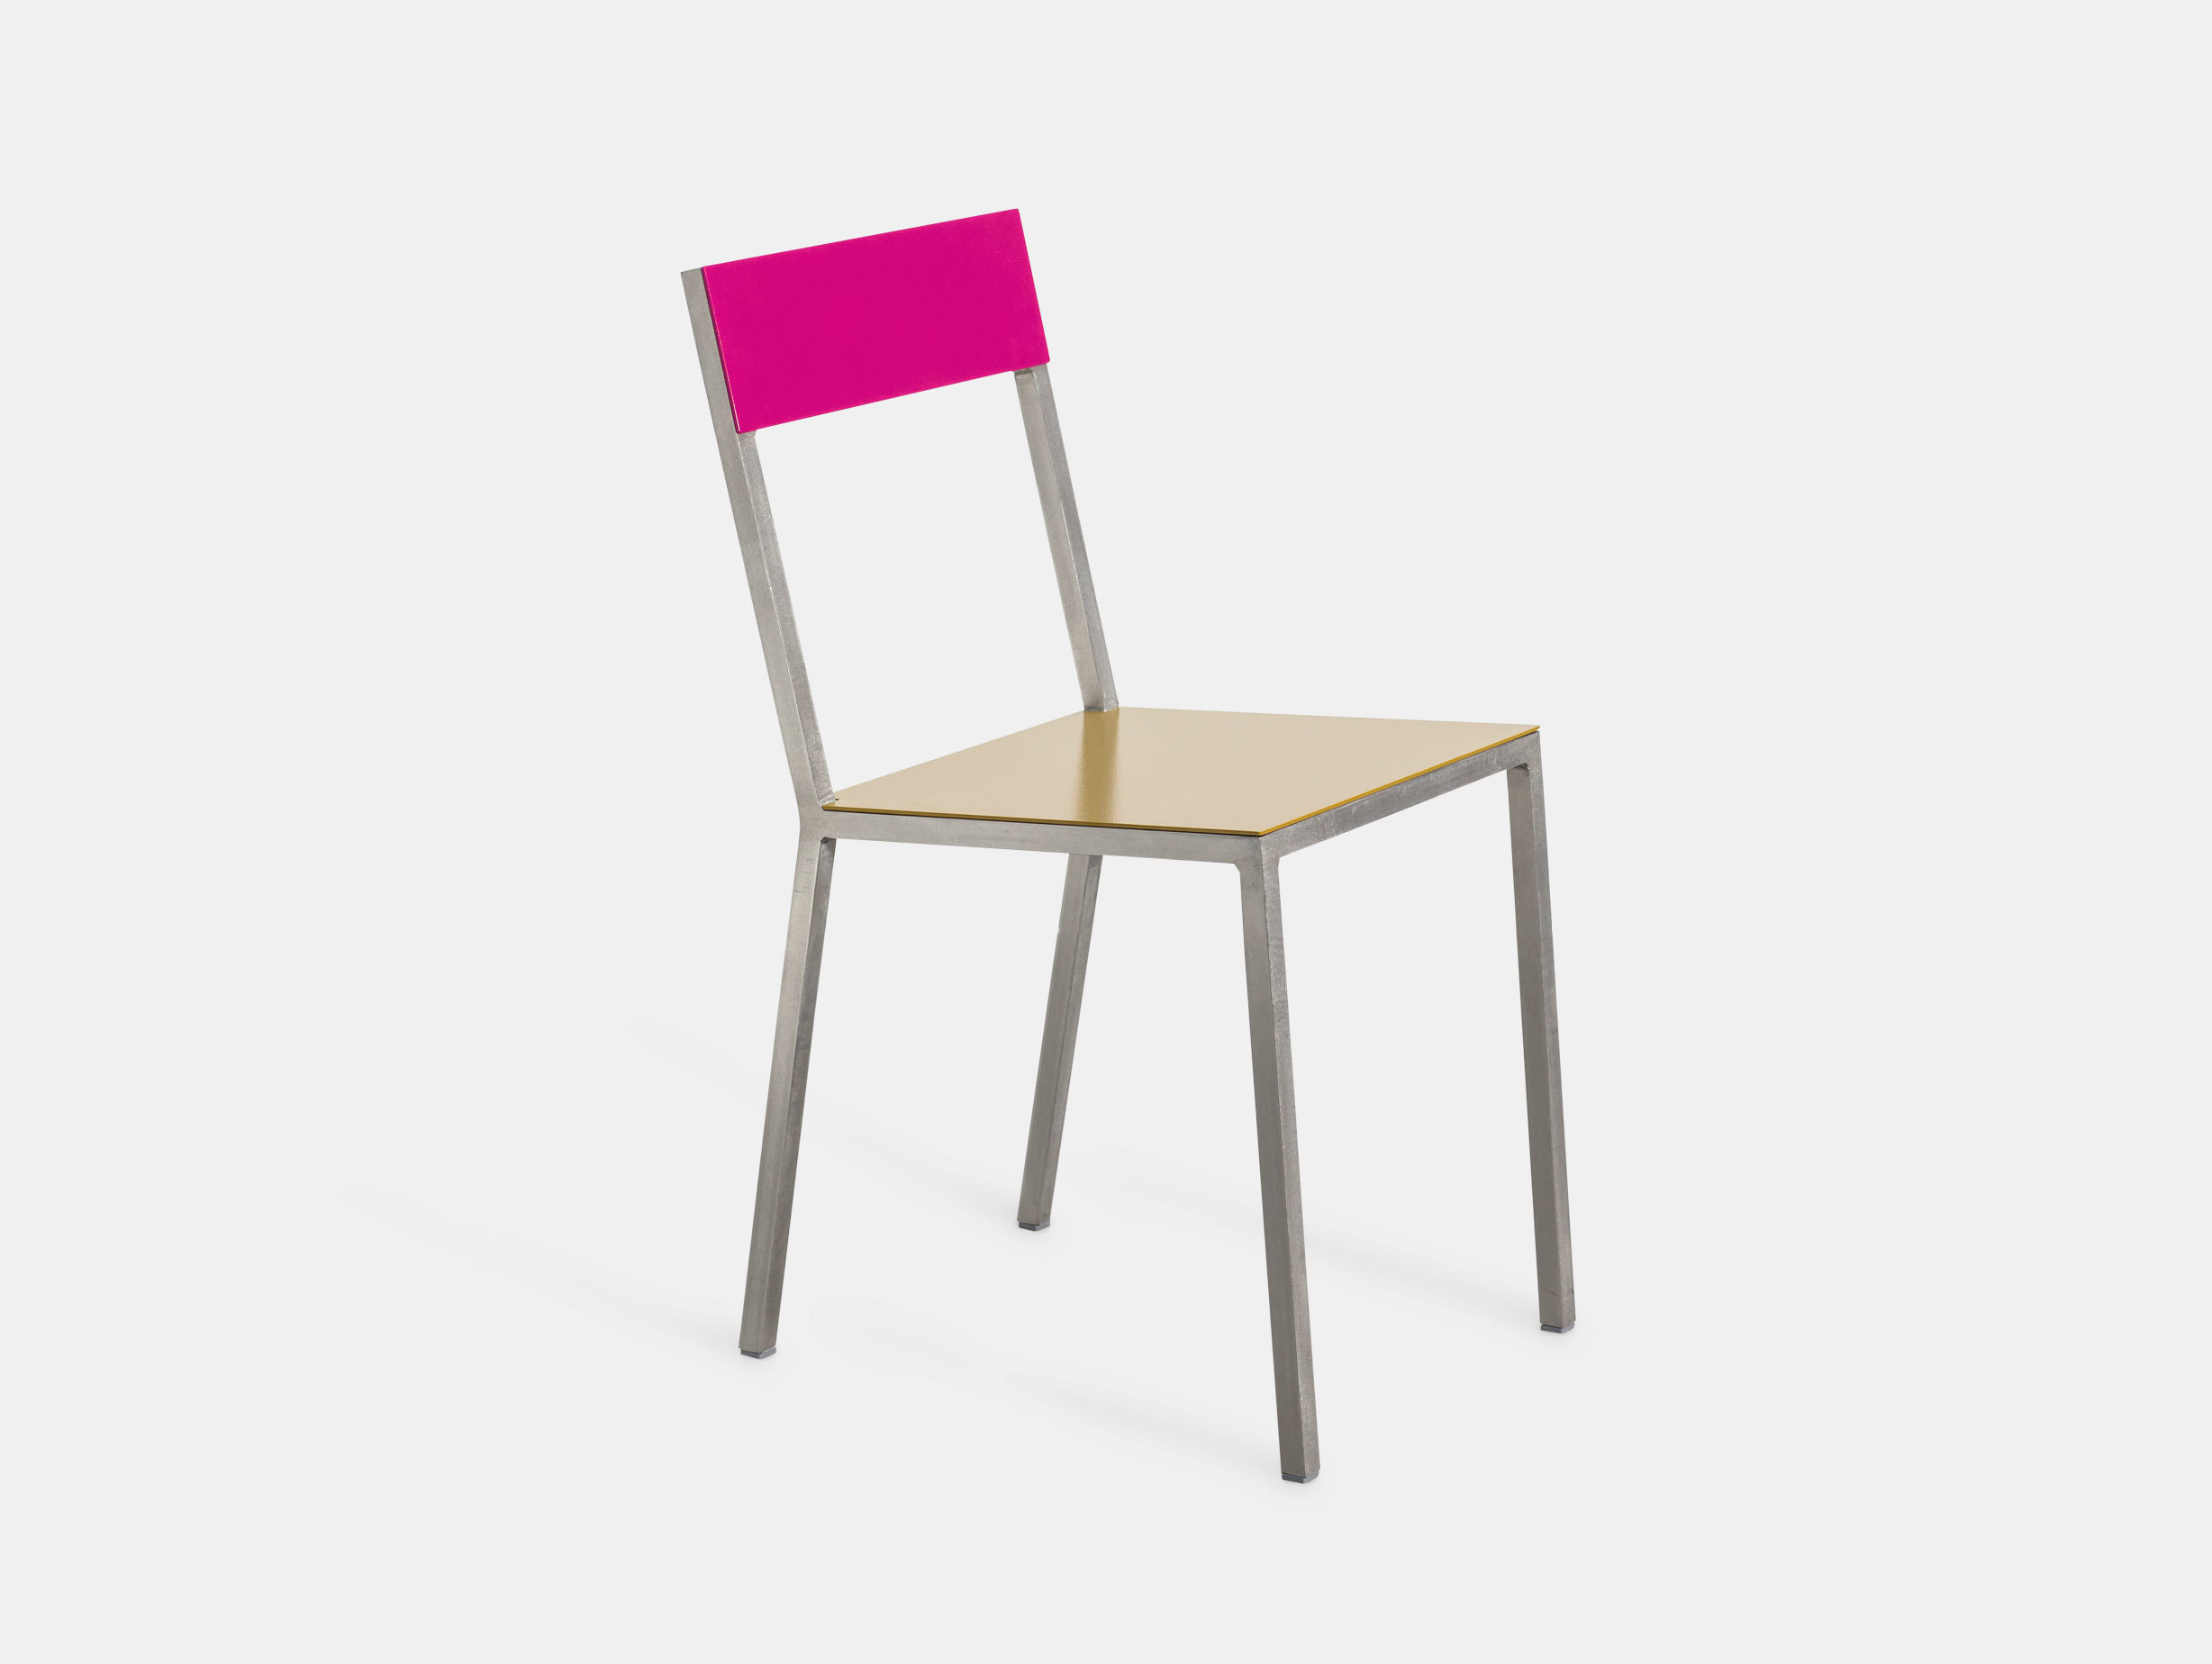 Valerie Objects Alu Chair Magenta Curry Muller Van Severen